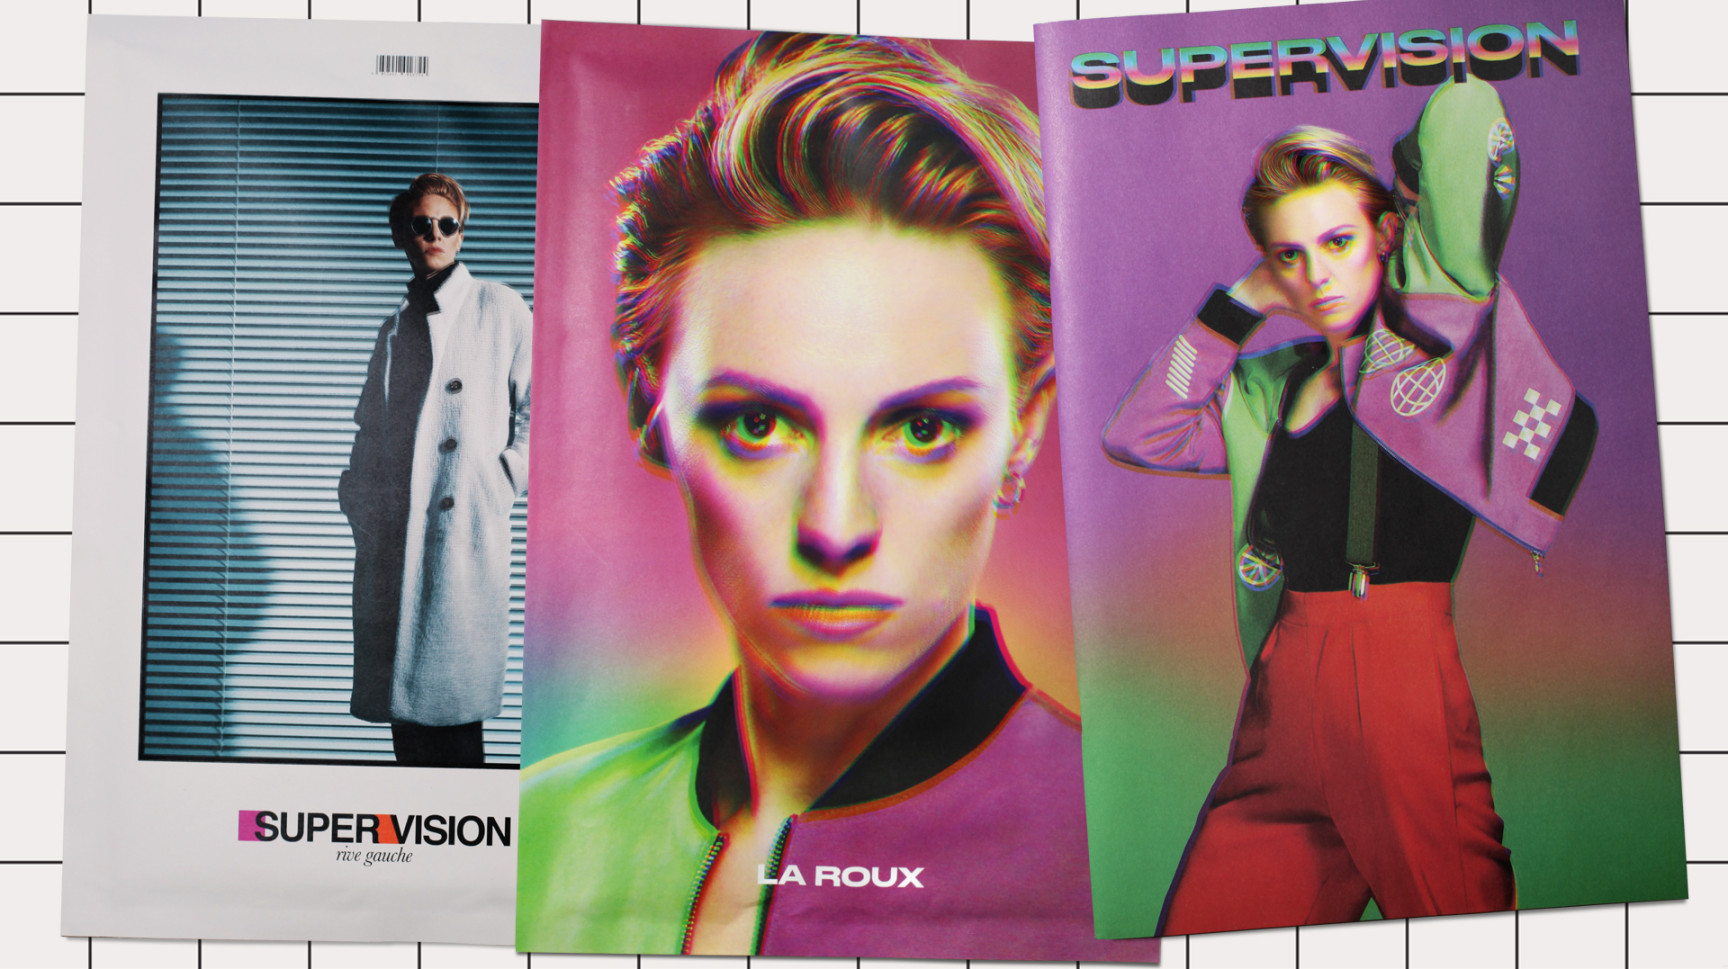 Art Direction & Design / Music<br /><strong>La Roux</strong>